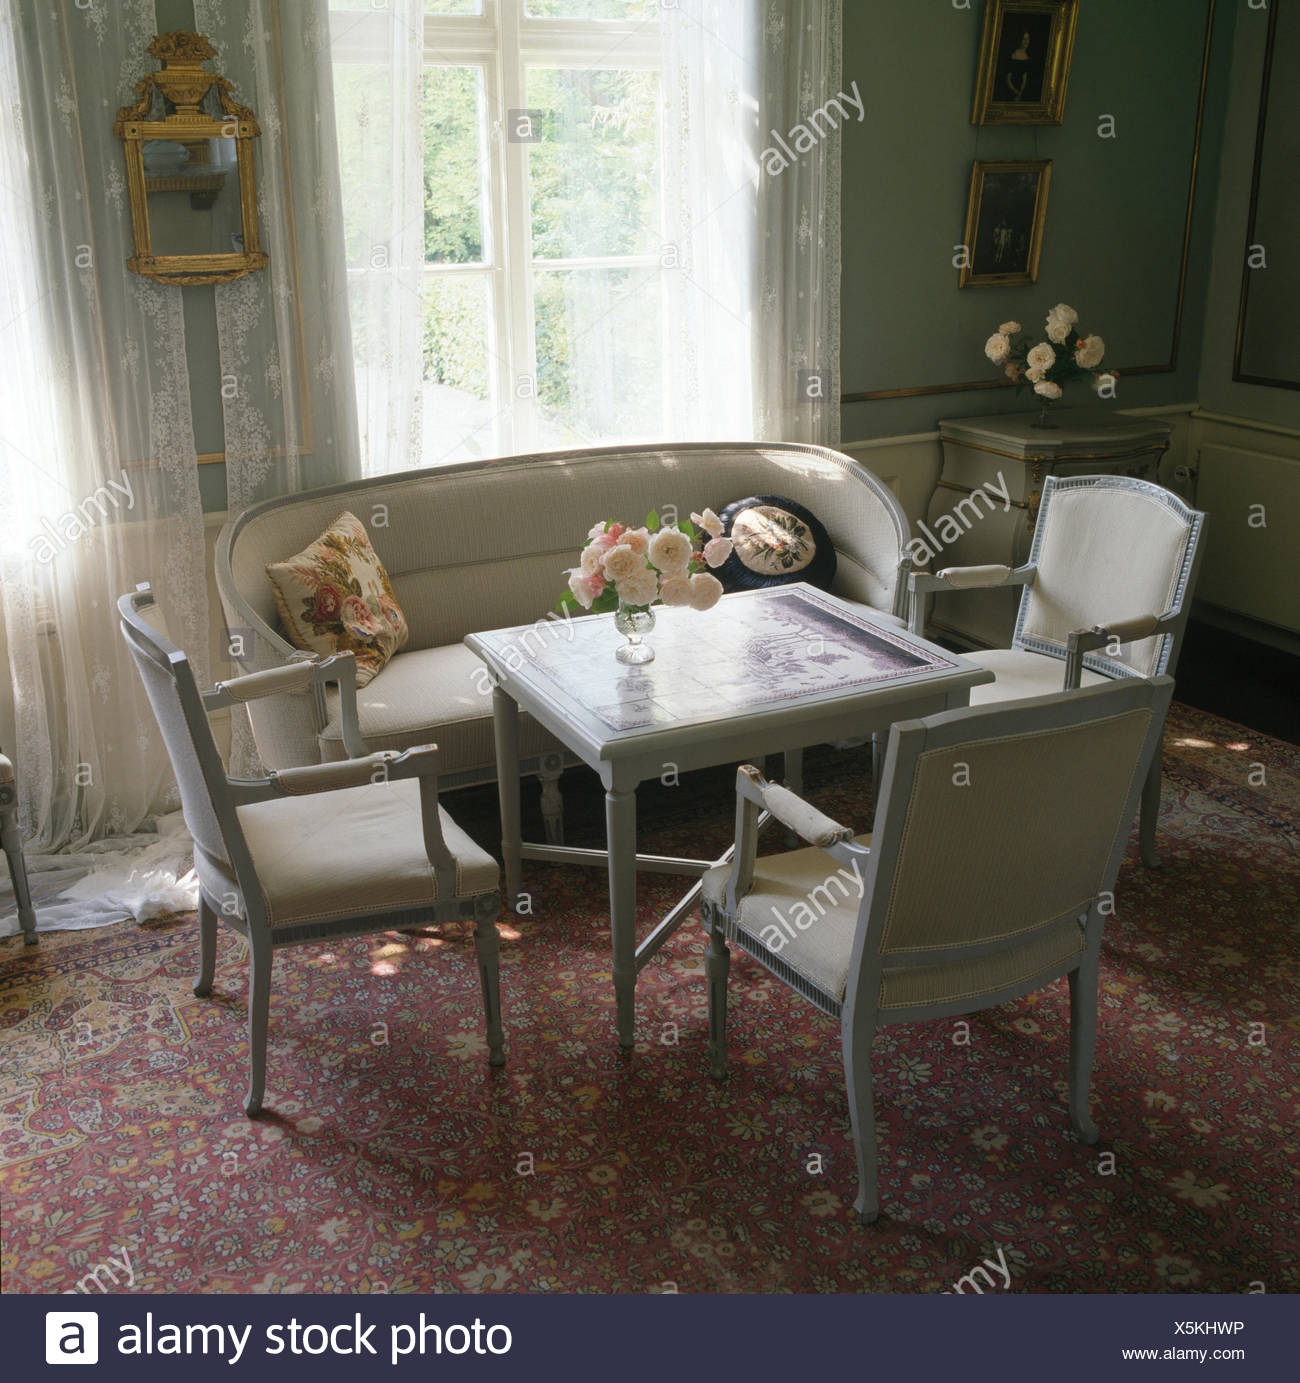 grey painted chairs value city furniture dining room and small table in swedish stock